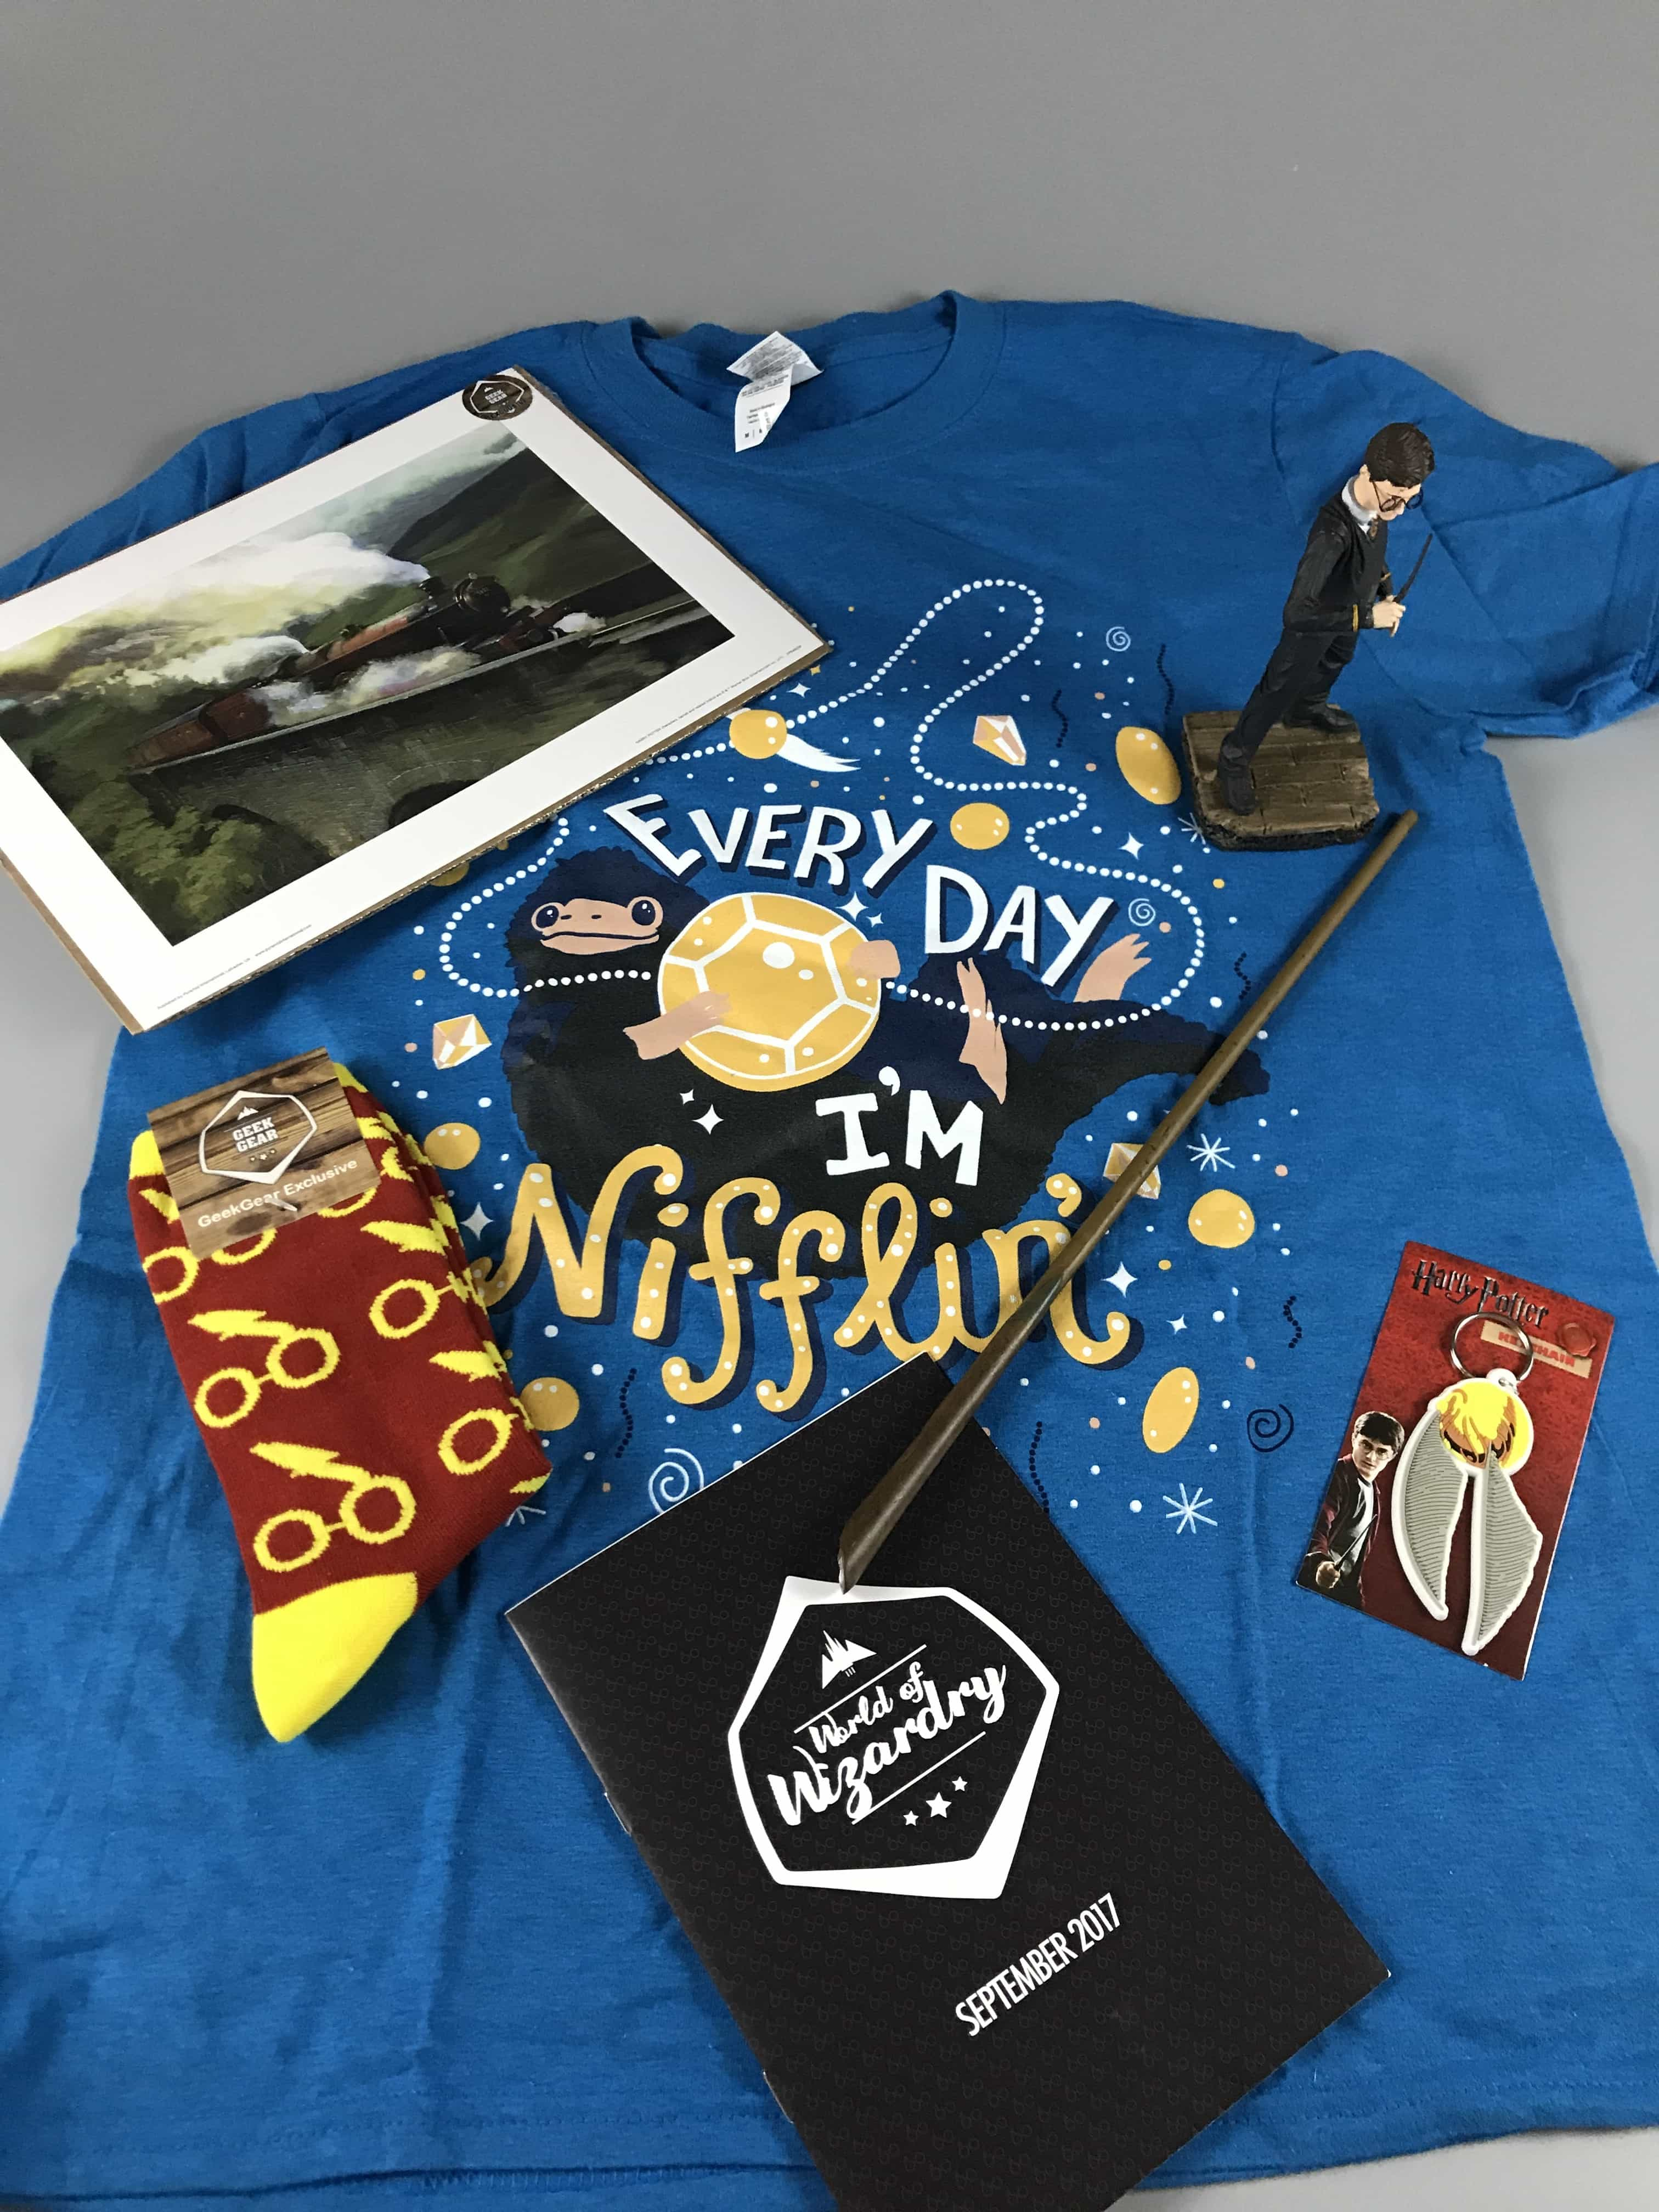 Geek Gear World of Wizardry September 2017 Subscription Box Review